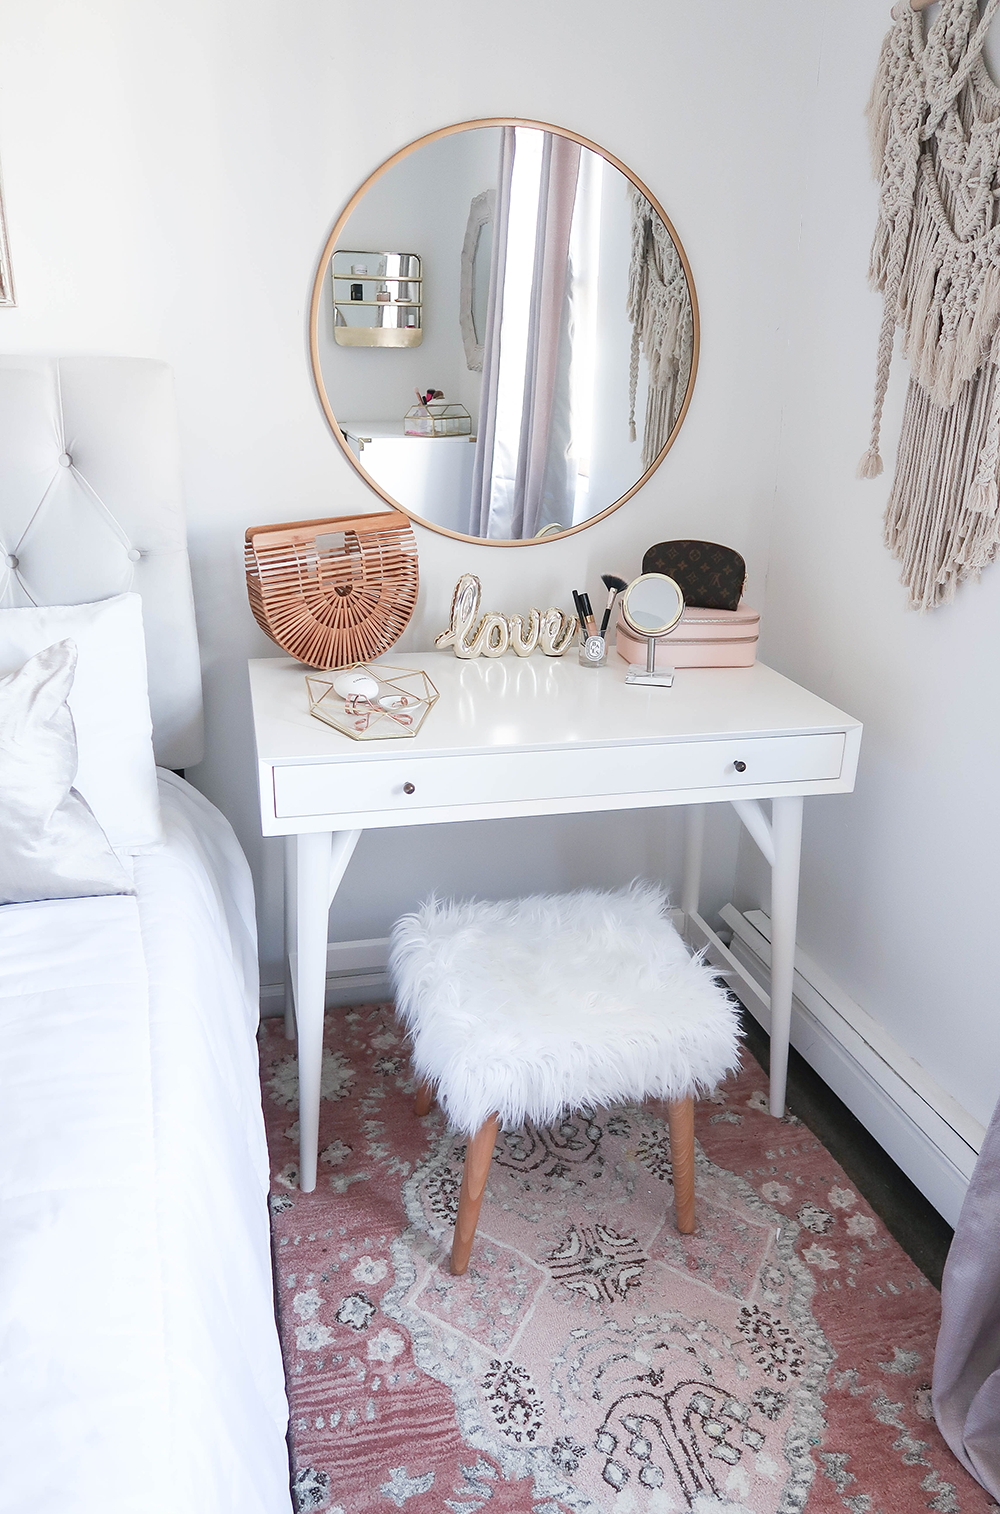 Styling A Vanity In A Small Space | House | Room decor, Diy ...